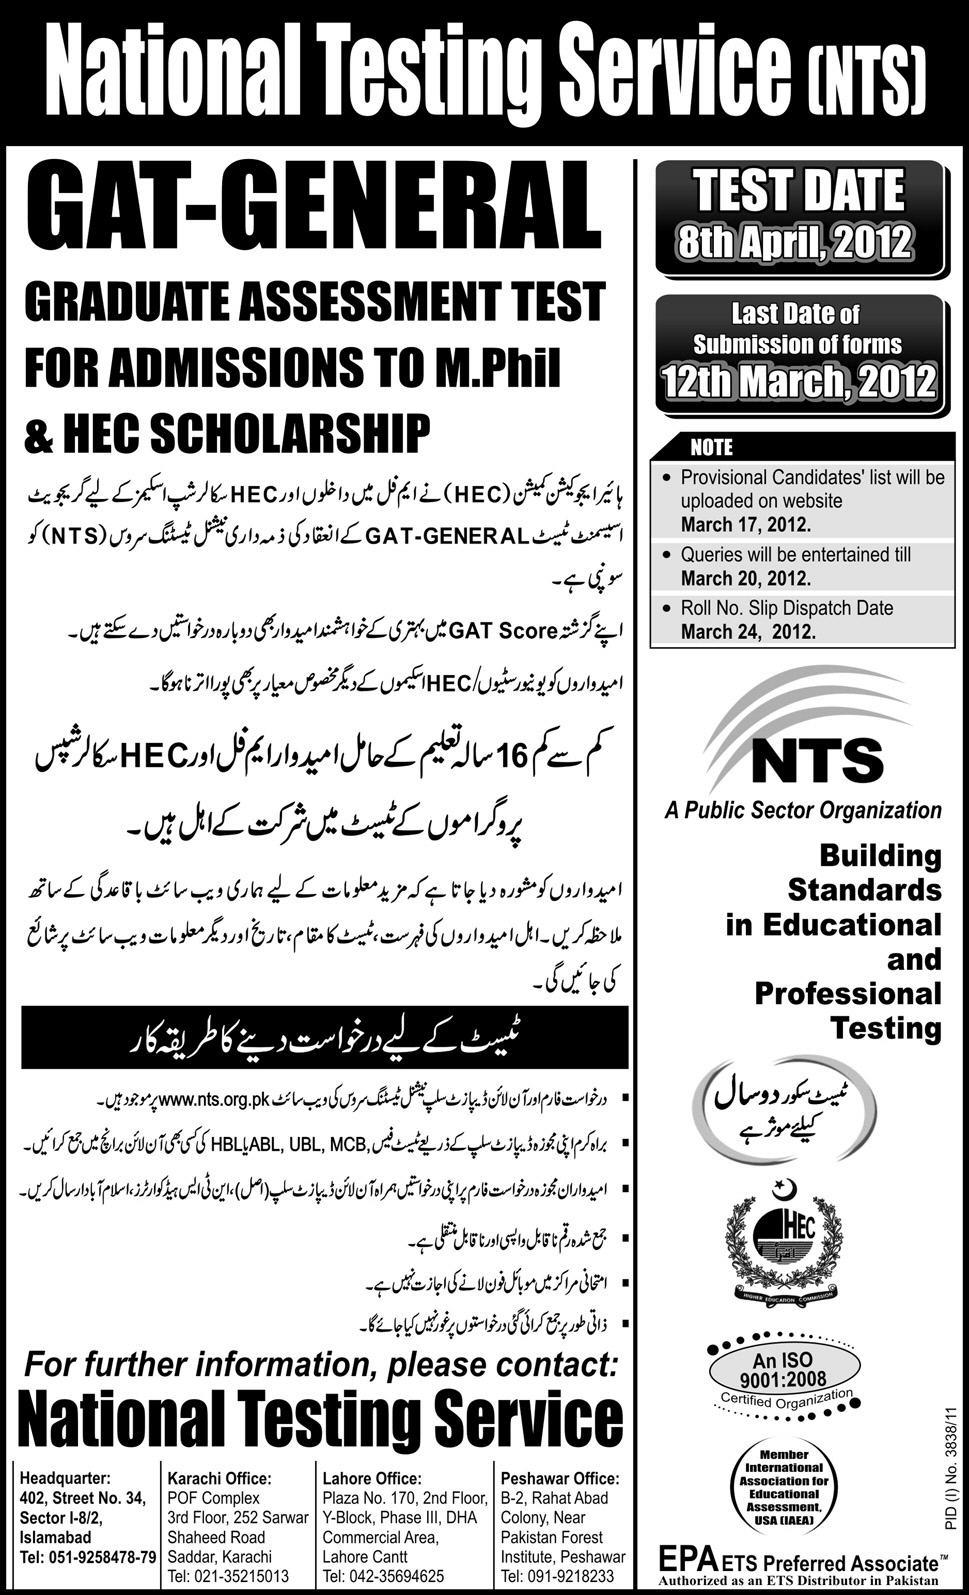 NTS GAT-General for HEC Scholarships and M.Phil Admissions 2012